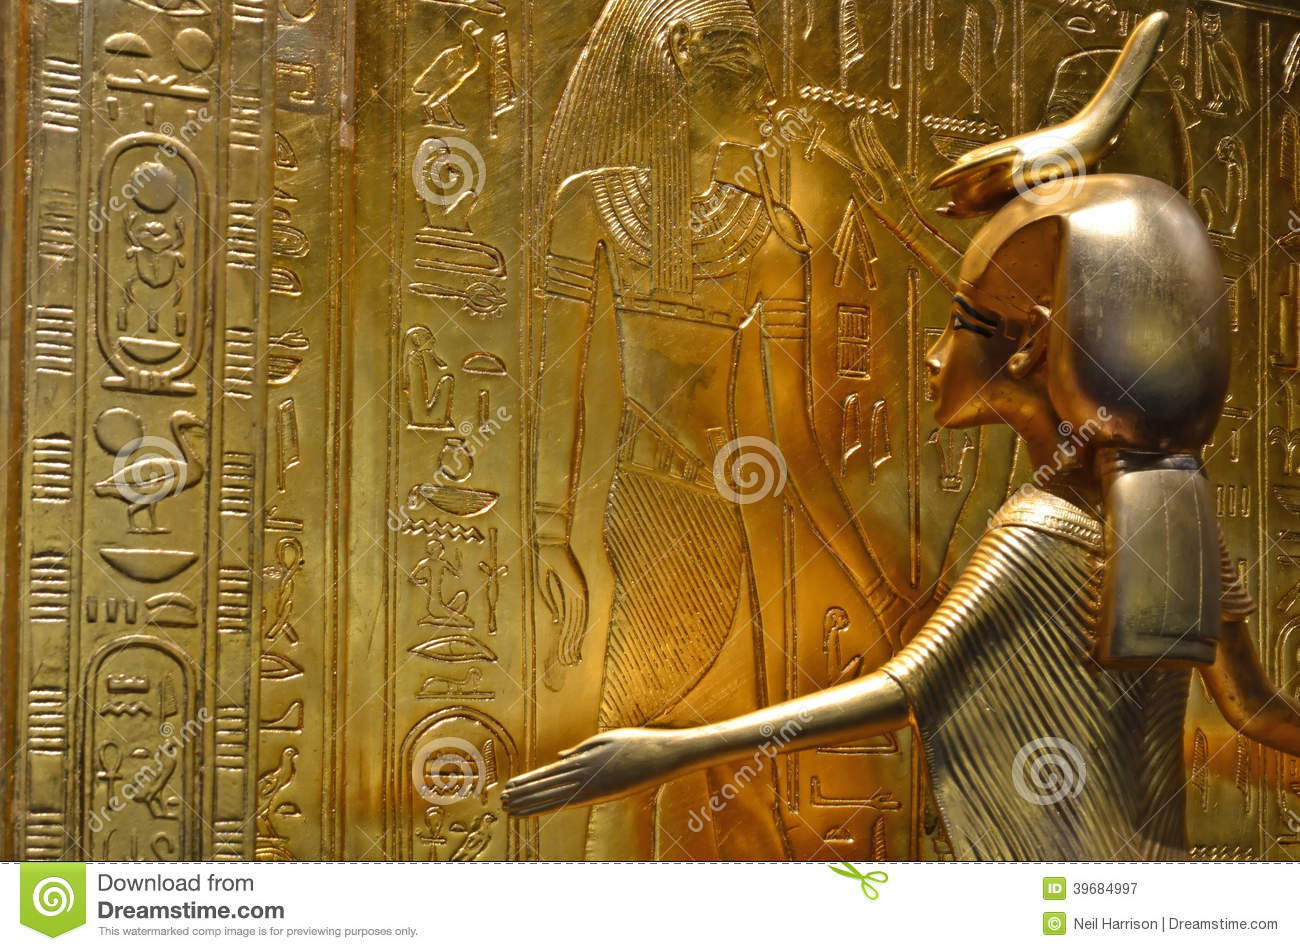 commodities nears hieroglyphs demand gold miner facts the egyptian n says northern figures record golden markets new wgc